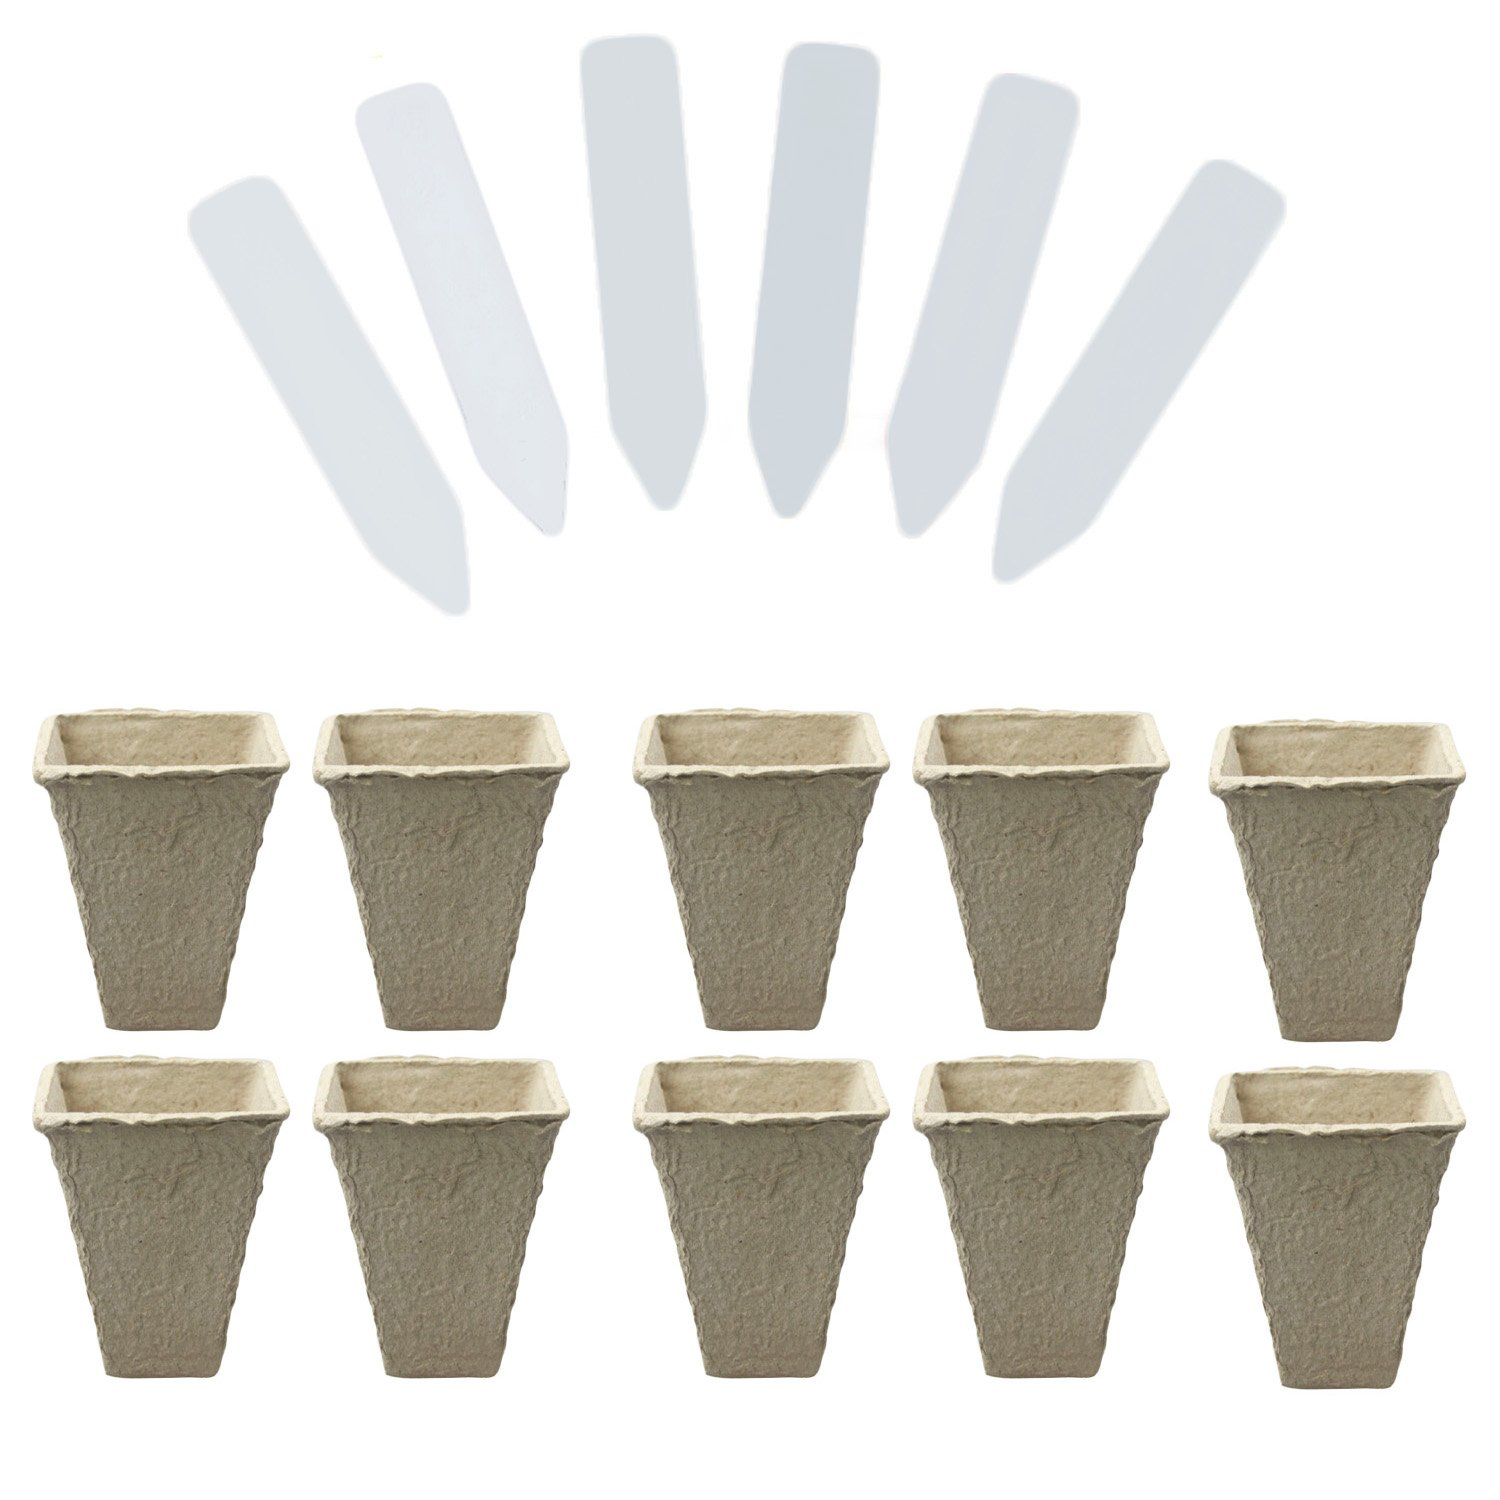 10 Strips Square Peat Pots Plant Seedling Starters Cups Nursery Herb Seed Biodegradable Pots with 50pcs Label Maker Tags Gosear